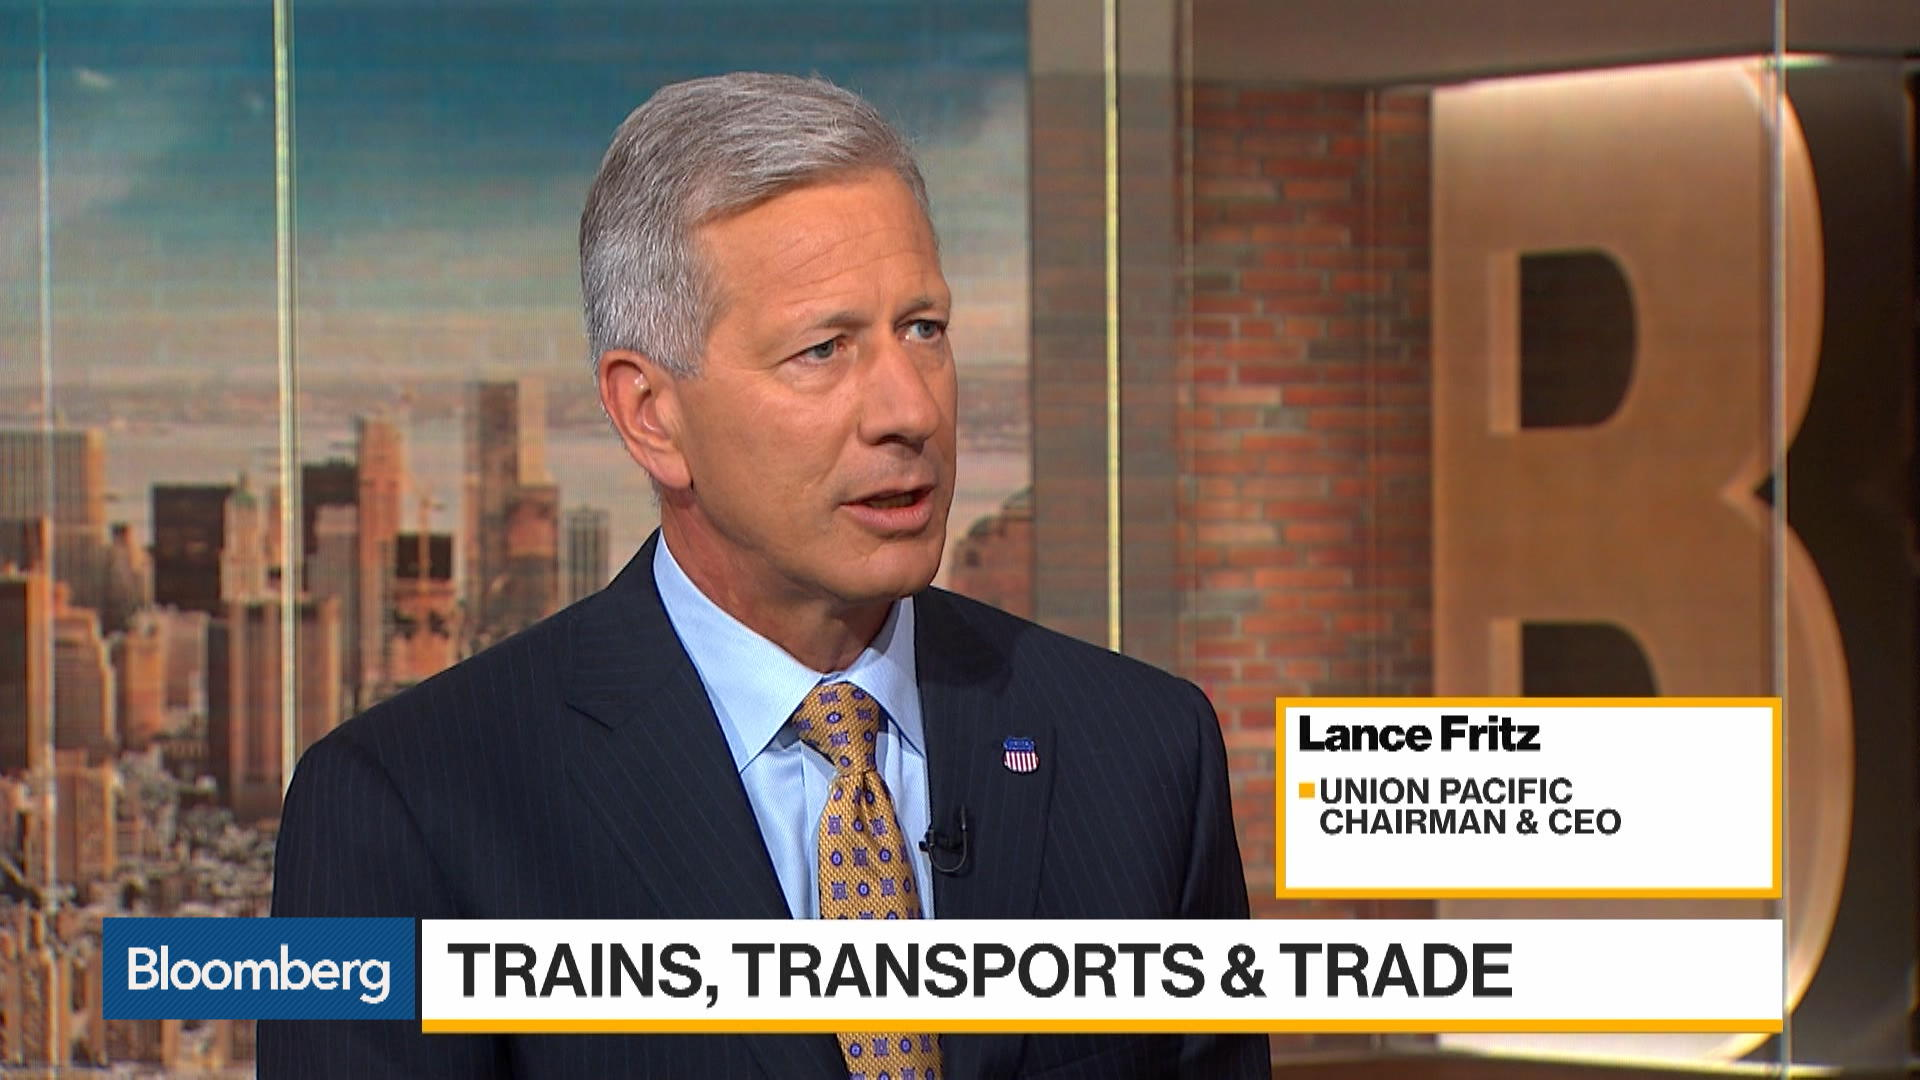 Union Pacific CEO Sees Customers Holding Back Due to Trade Tensions